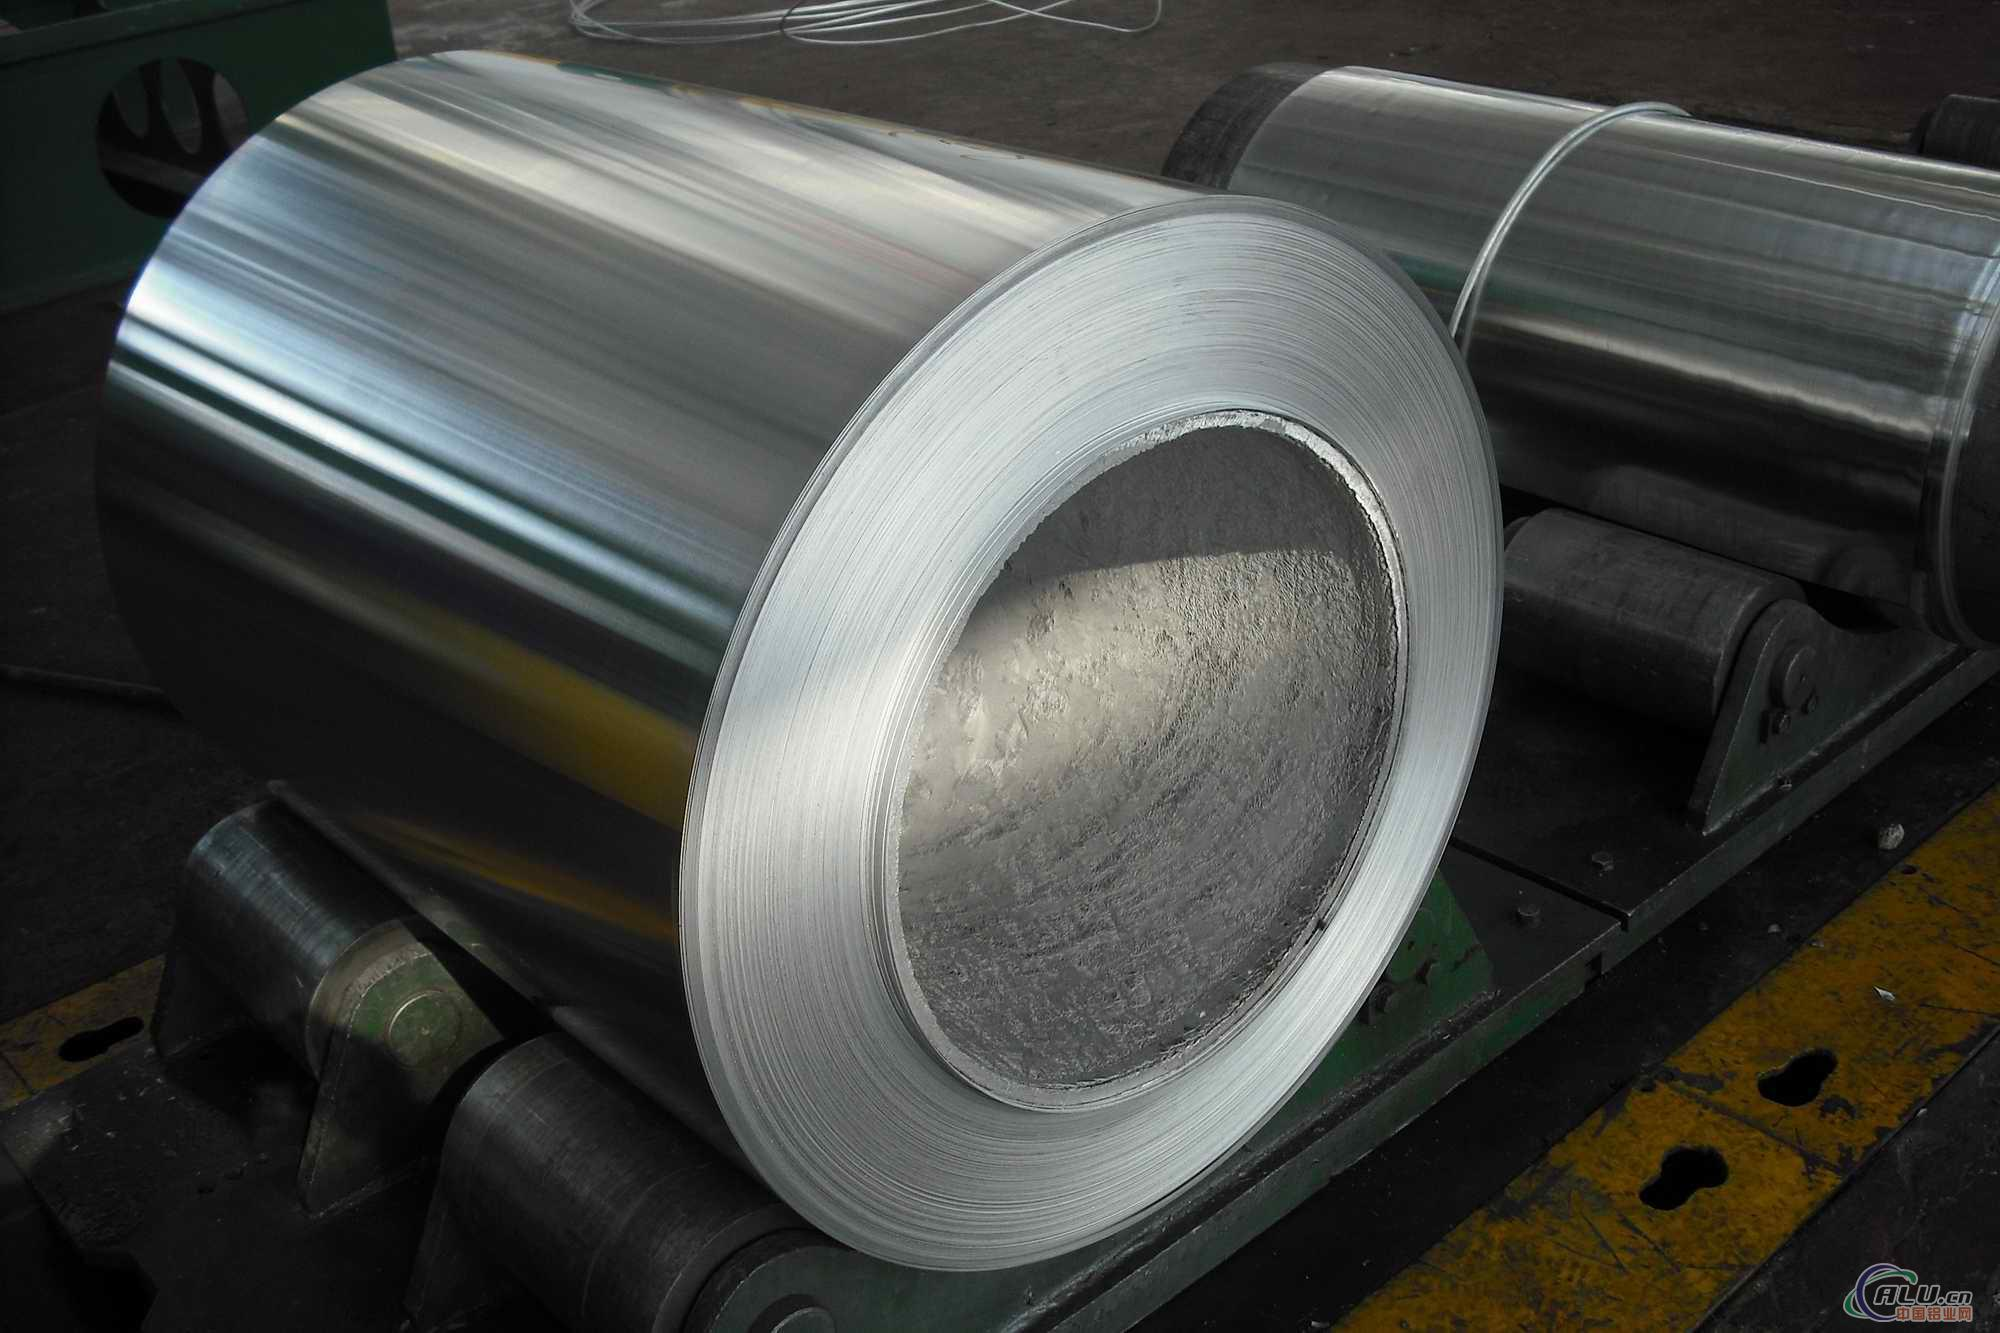 Household aluminum foil with various dimensions